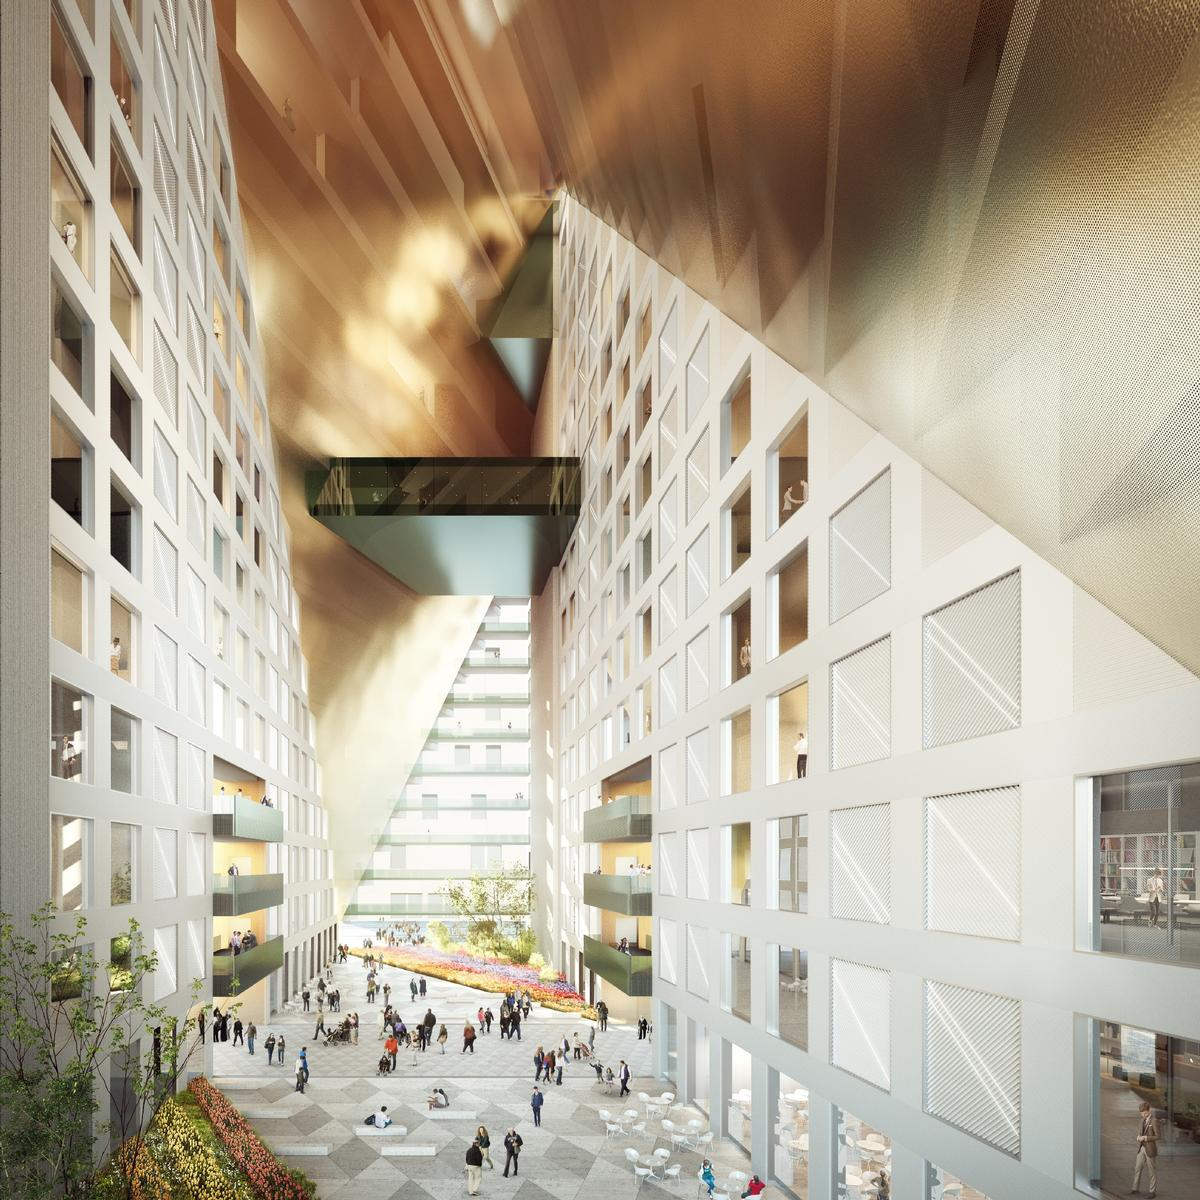 The prismatic building will feature an atrium garden, lofts, a hotel, and retail spaces. / Courtesy of OMA/ Image by Bloomimages